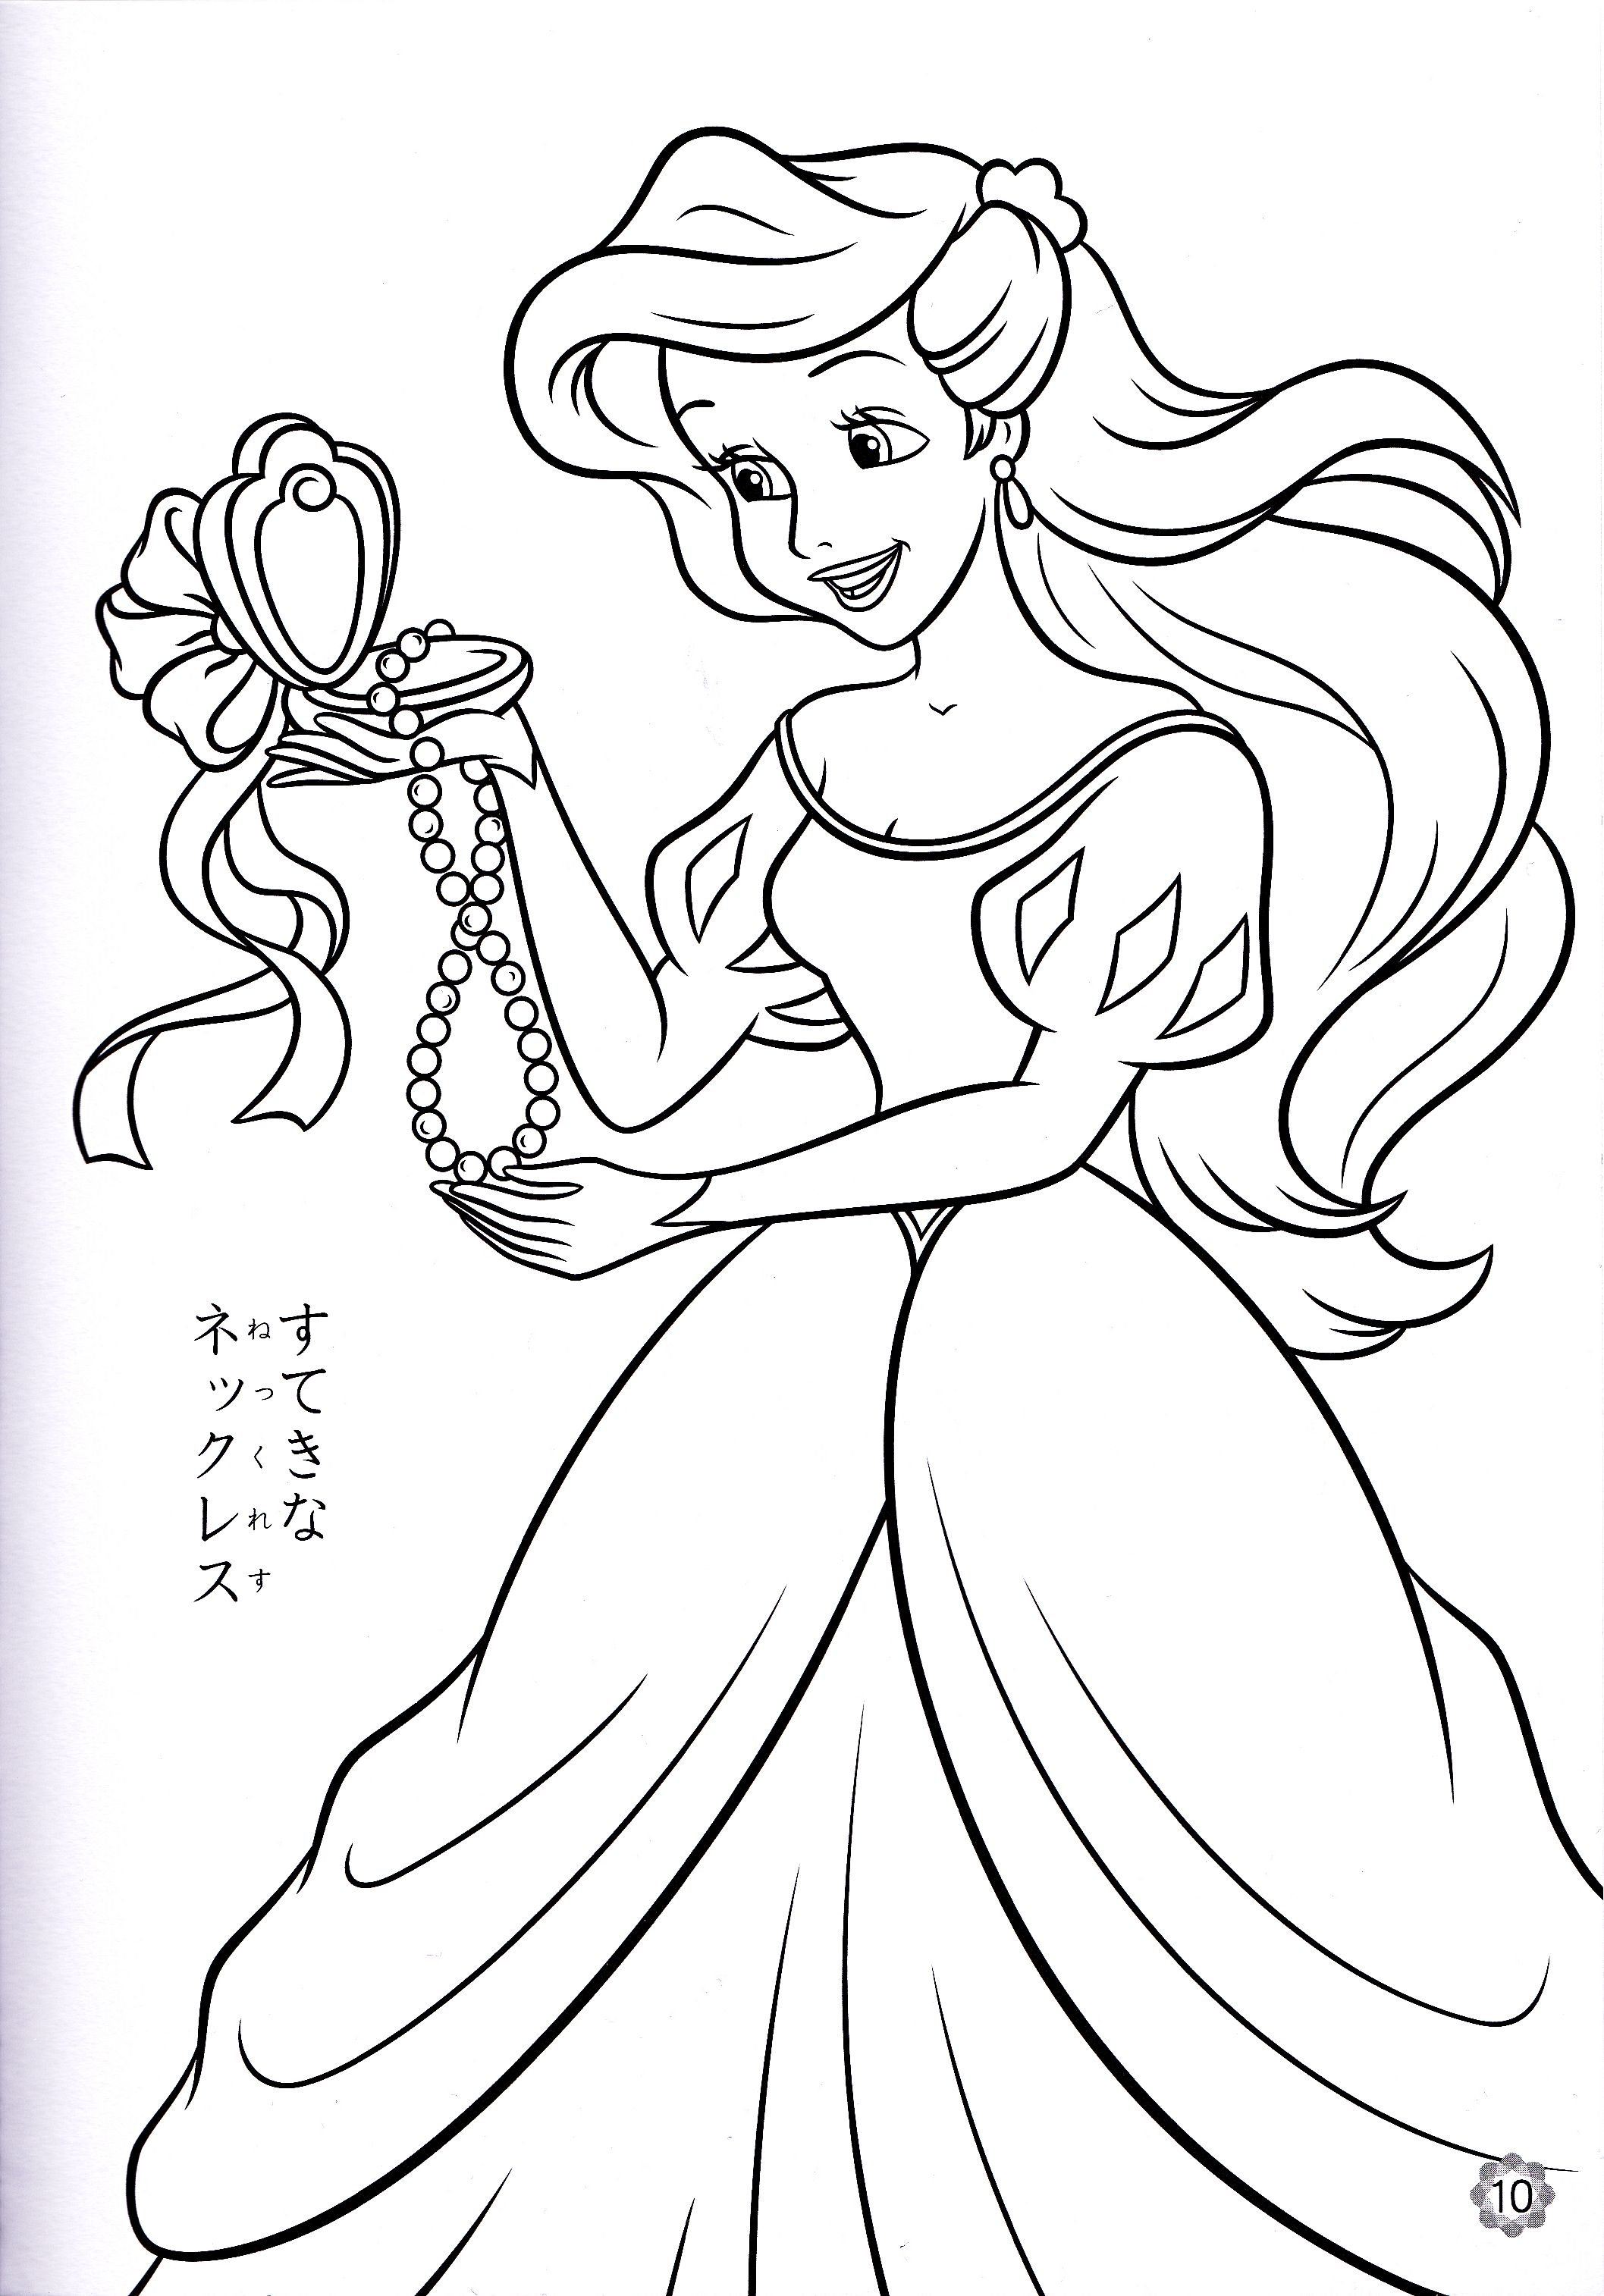 Free color pages princess - Princess Ariel Coloring Pages To Print Awesome Coloring Pages